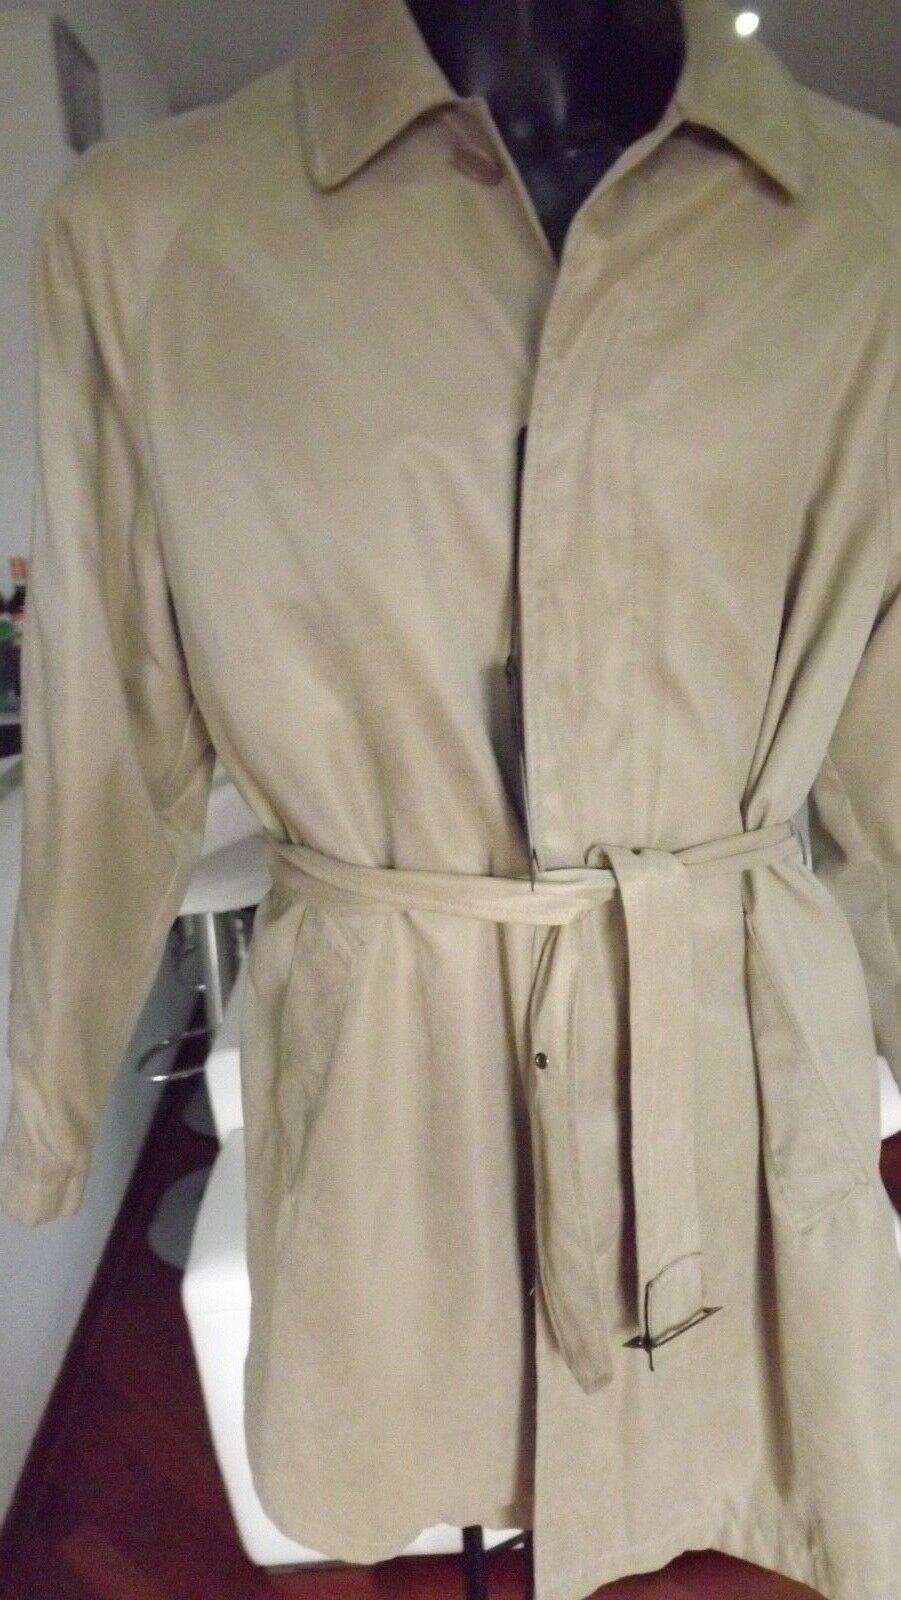 GUESS BY MARCIANO NUOVA COLL. TRENCH  IMBOTTITO NUOVO 329,00  46 FODERA STACCAB